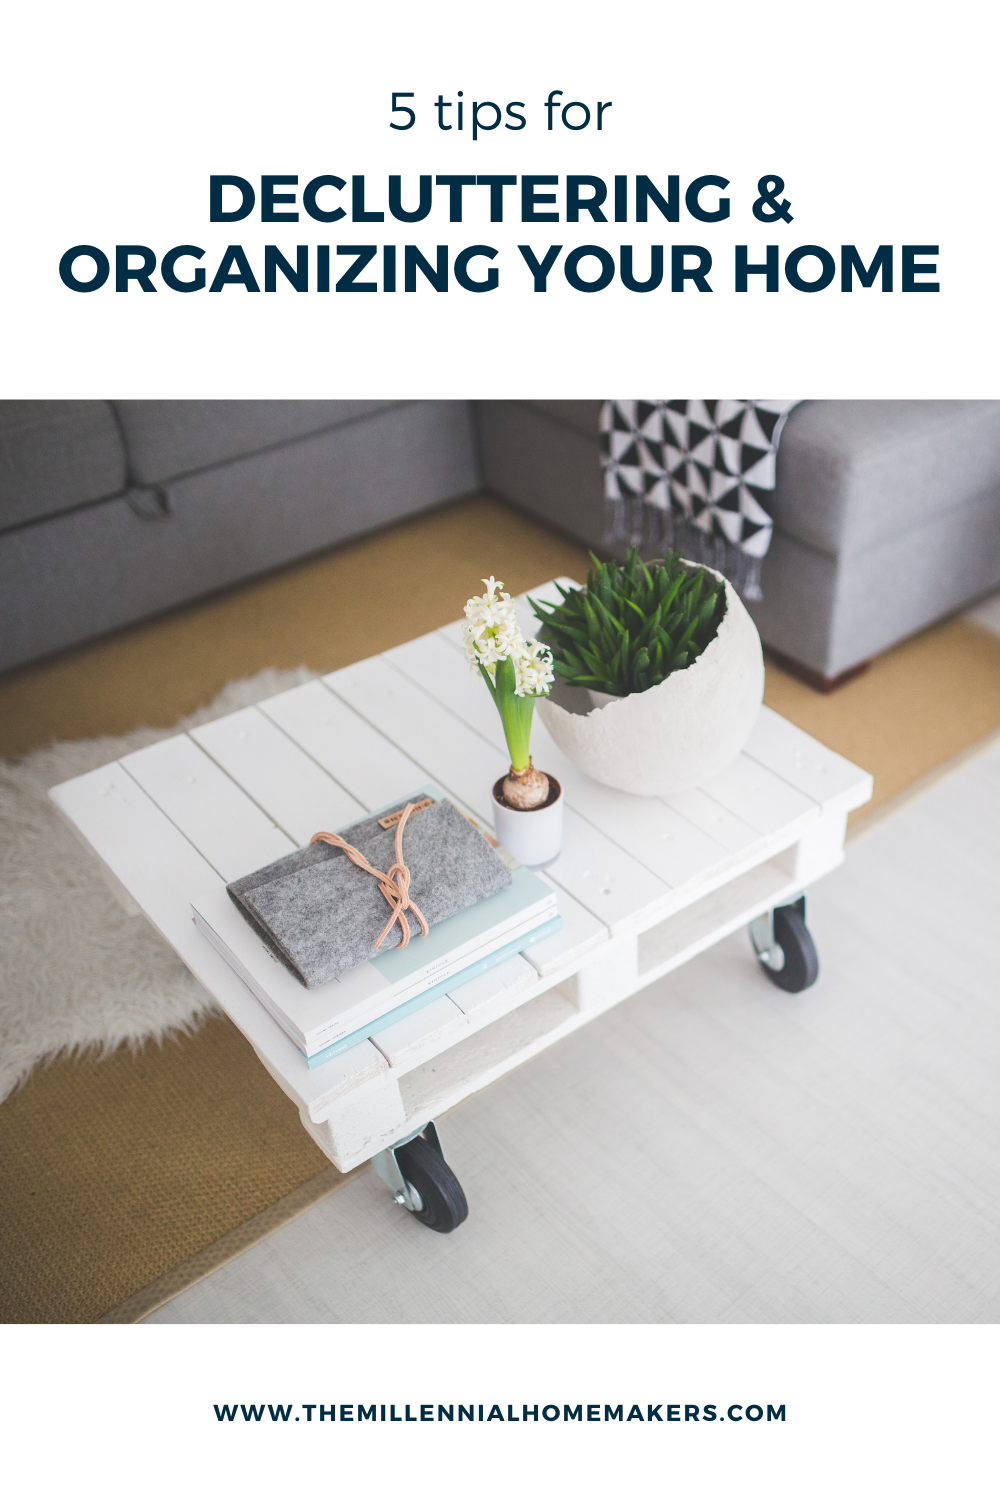 white coffee table with plants and books